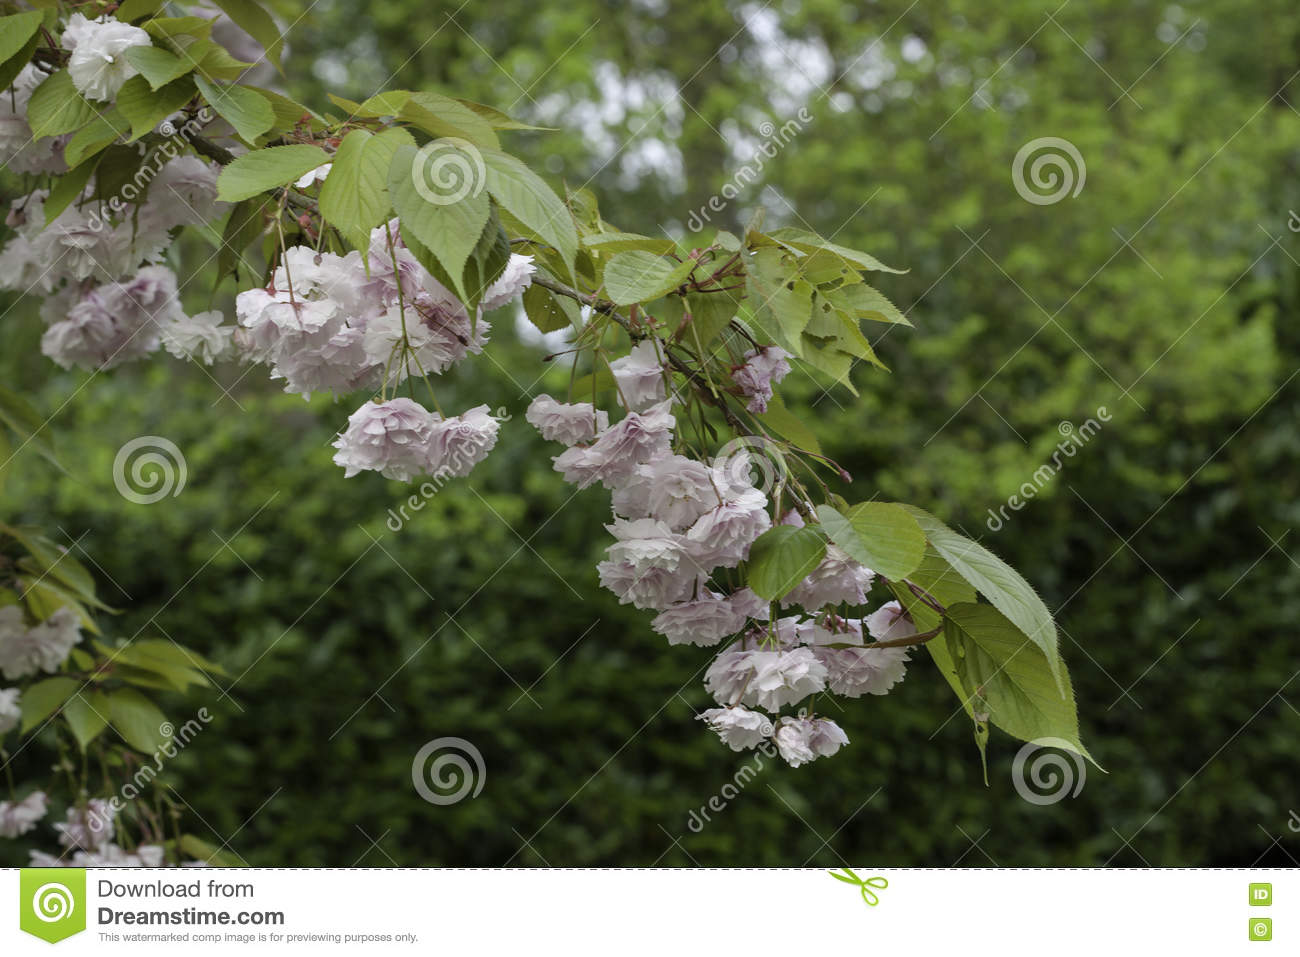 Light Pink Flowers On Tree Branches Stock Photo Image Of Botany